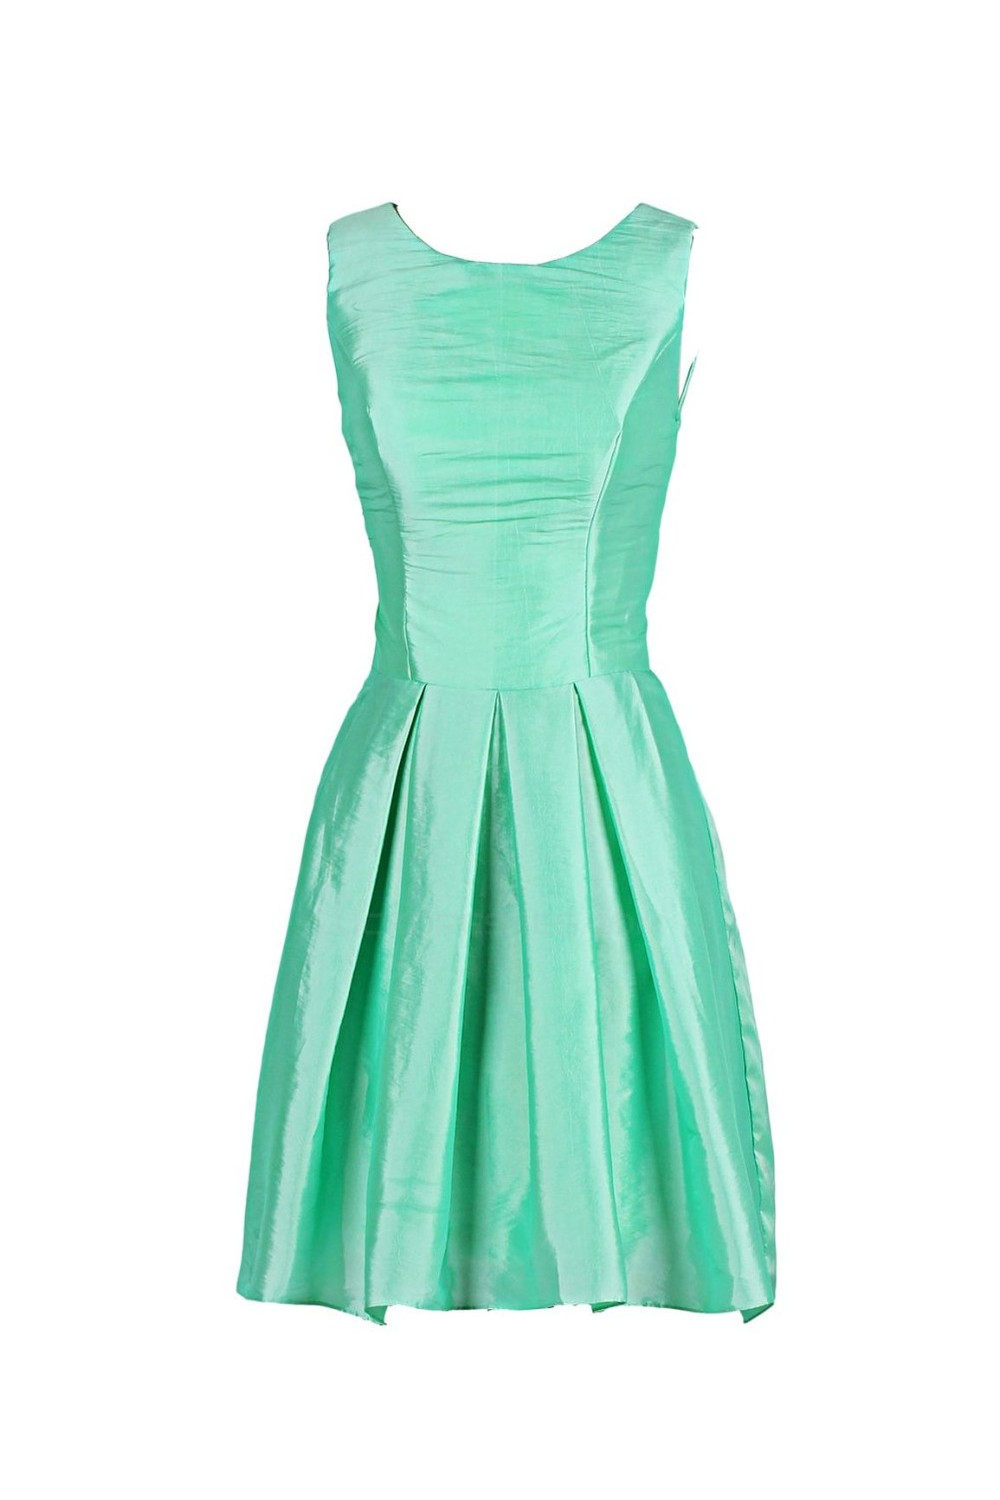 A-Line Short Green Bridesmaid Dresses/Wedding Party Dresses BD010032